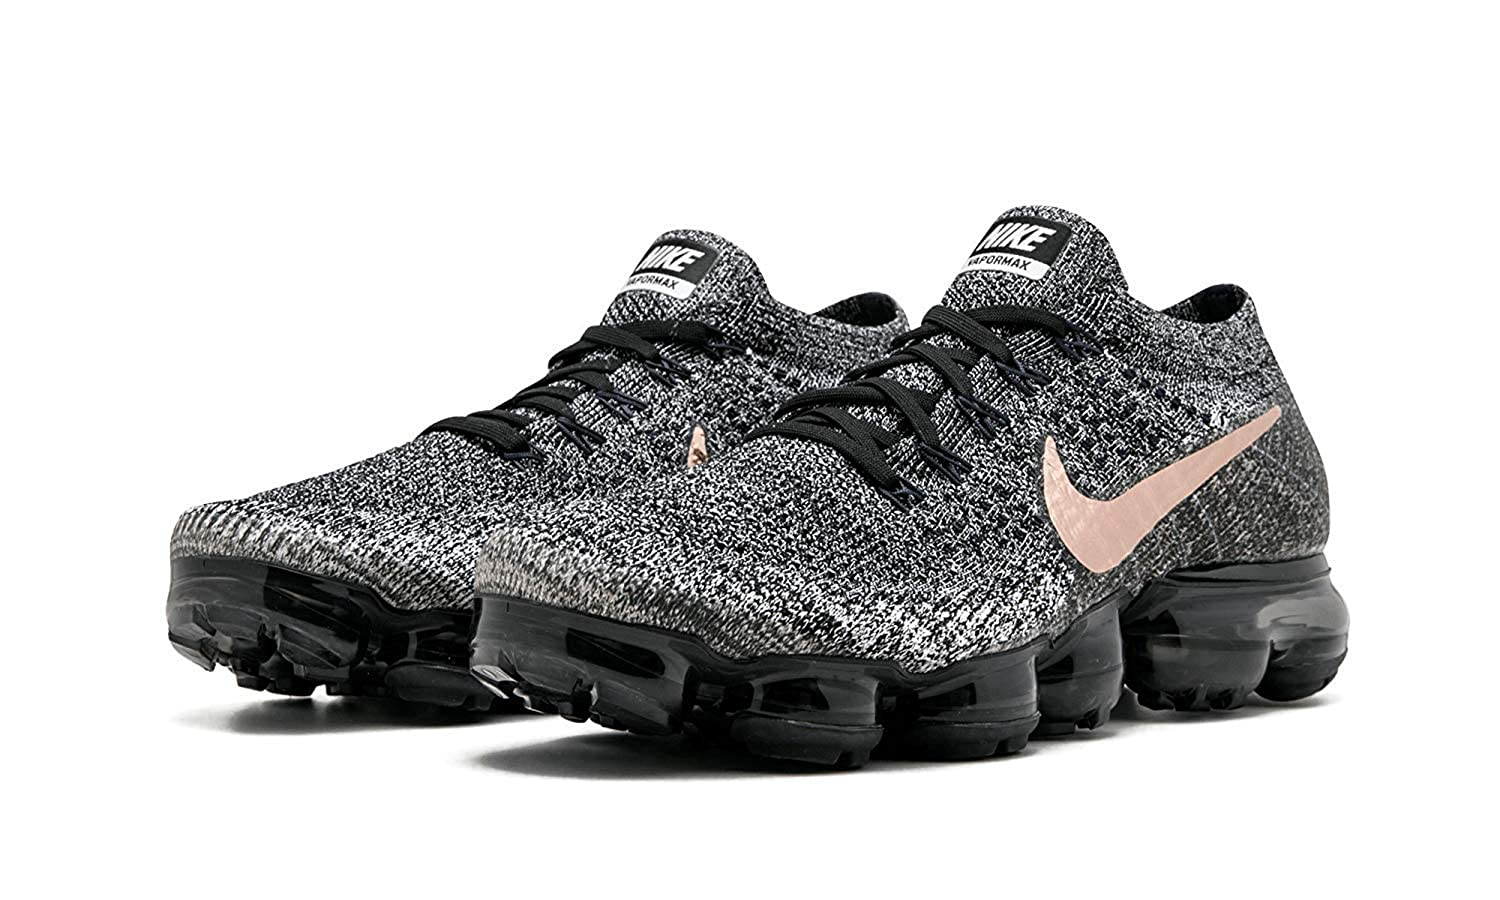 be8654bf12 NIKE Air Vapormax Flyknit Mens Style : 849558 Mens 849558-010: Amazon.co.uk:  Shoes & Bags